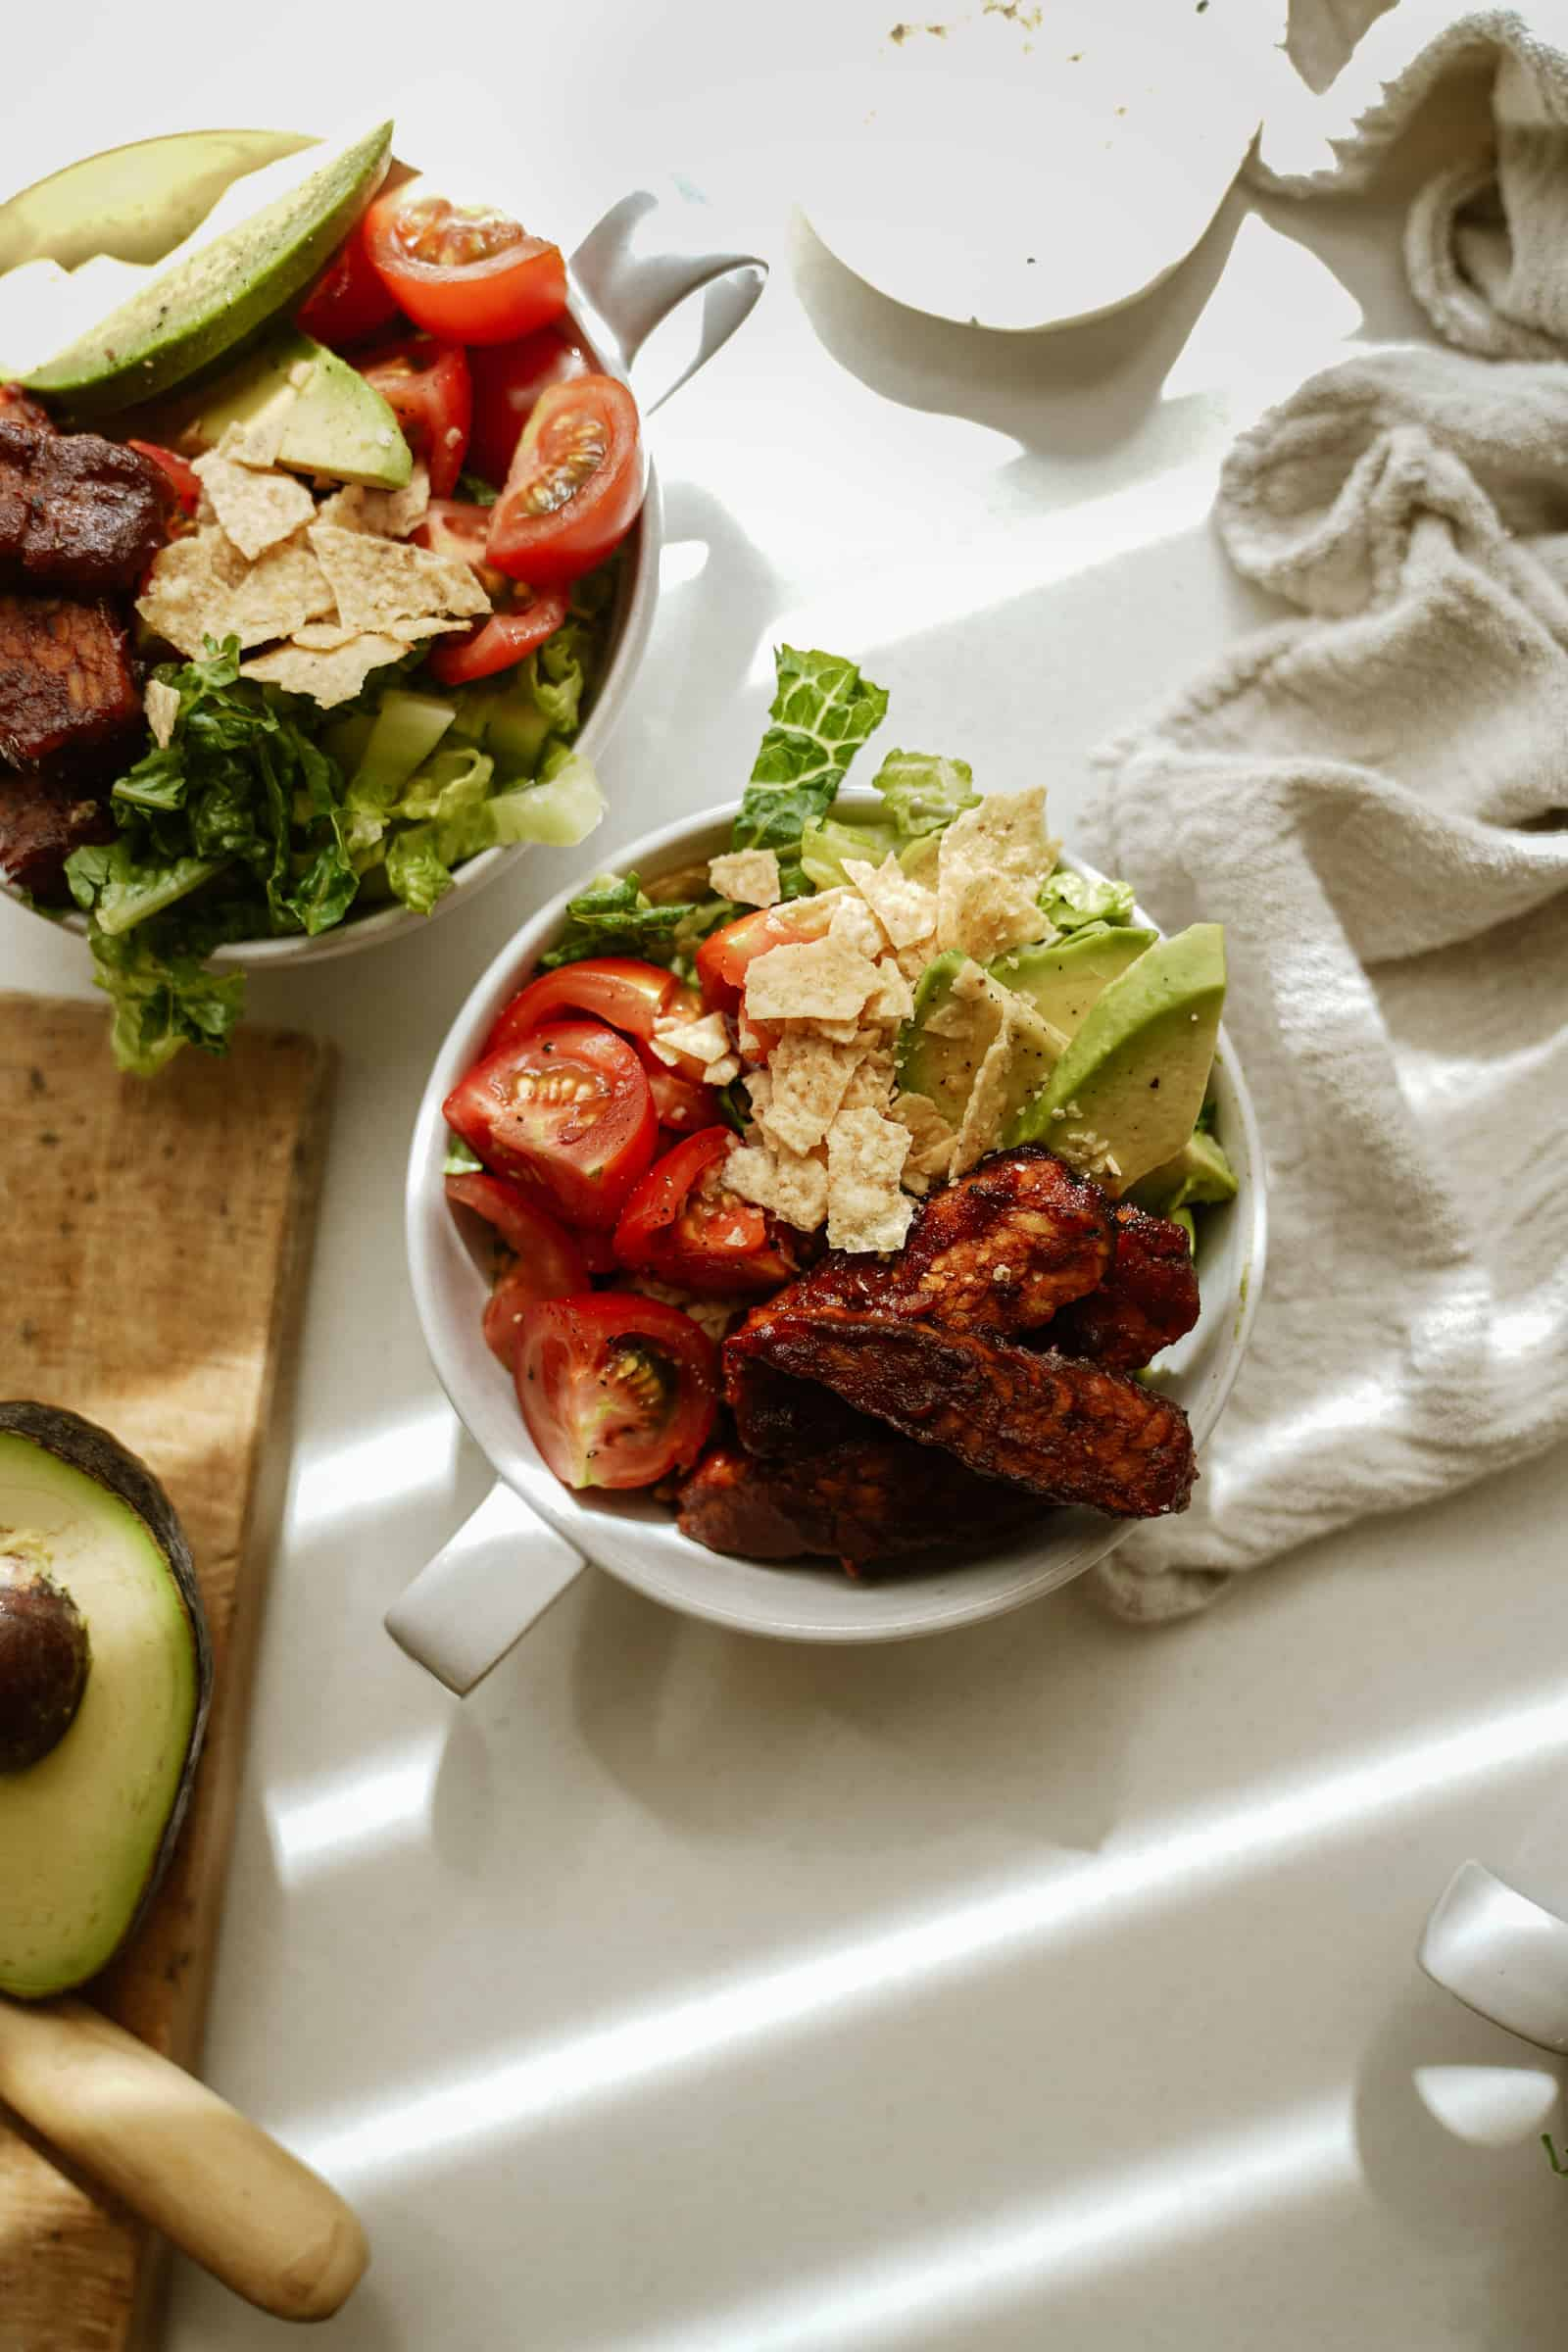 BBQ tempeh bowls on counter with fresh veggies